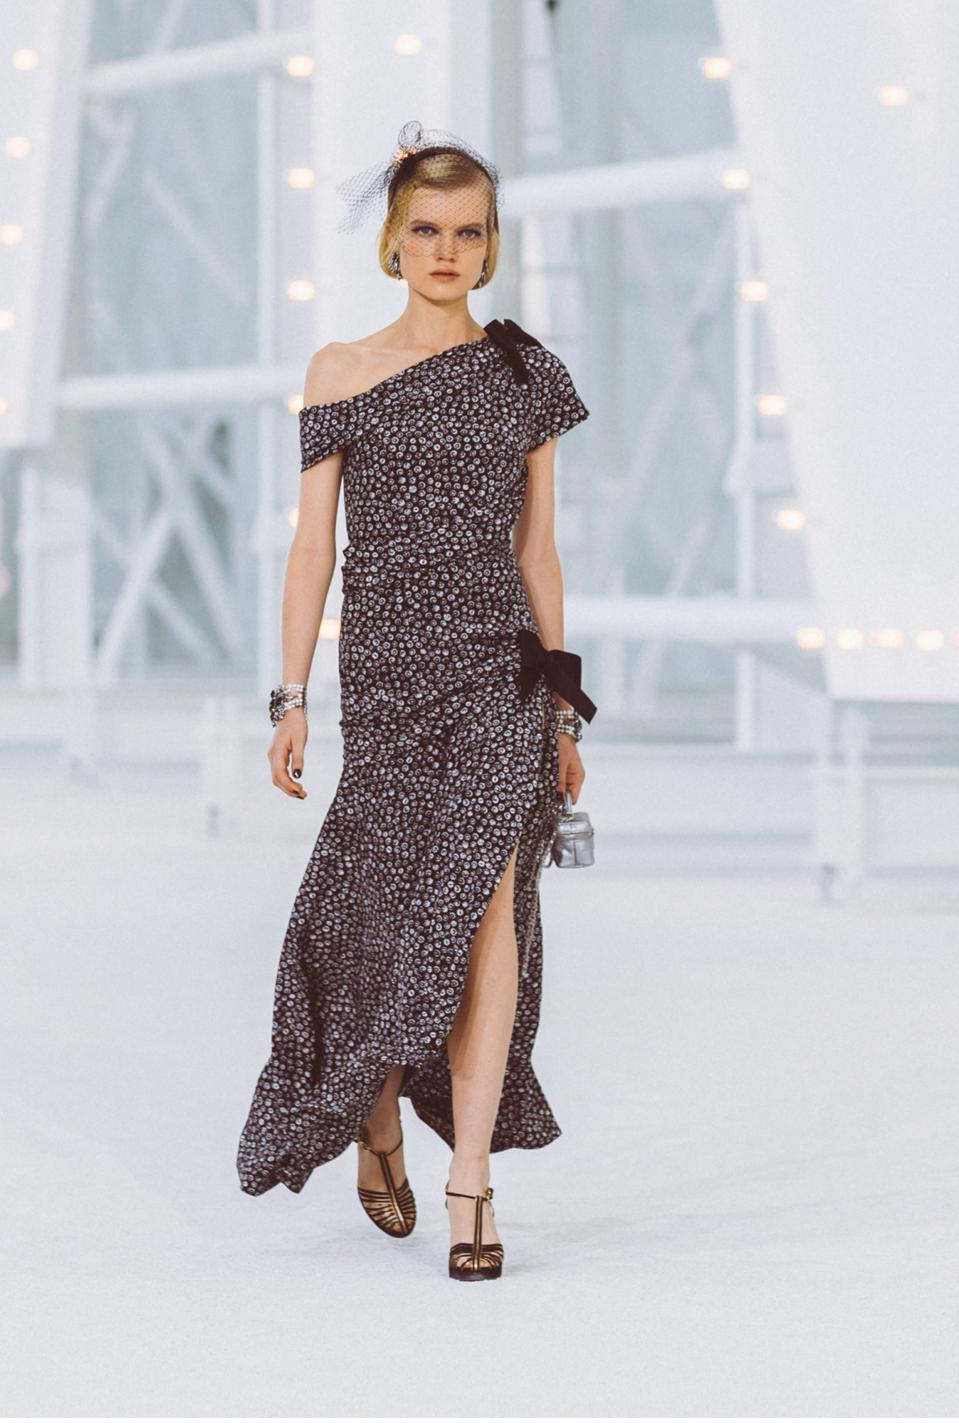 CHANEL Dress – Spring/Summer 2021, Look 6, P70590 Printed Crepe de Chine